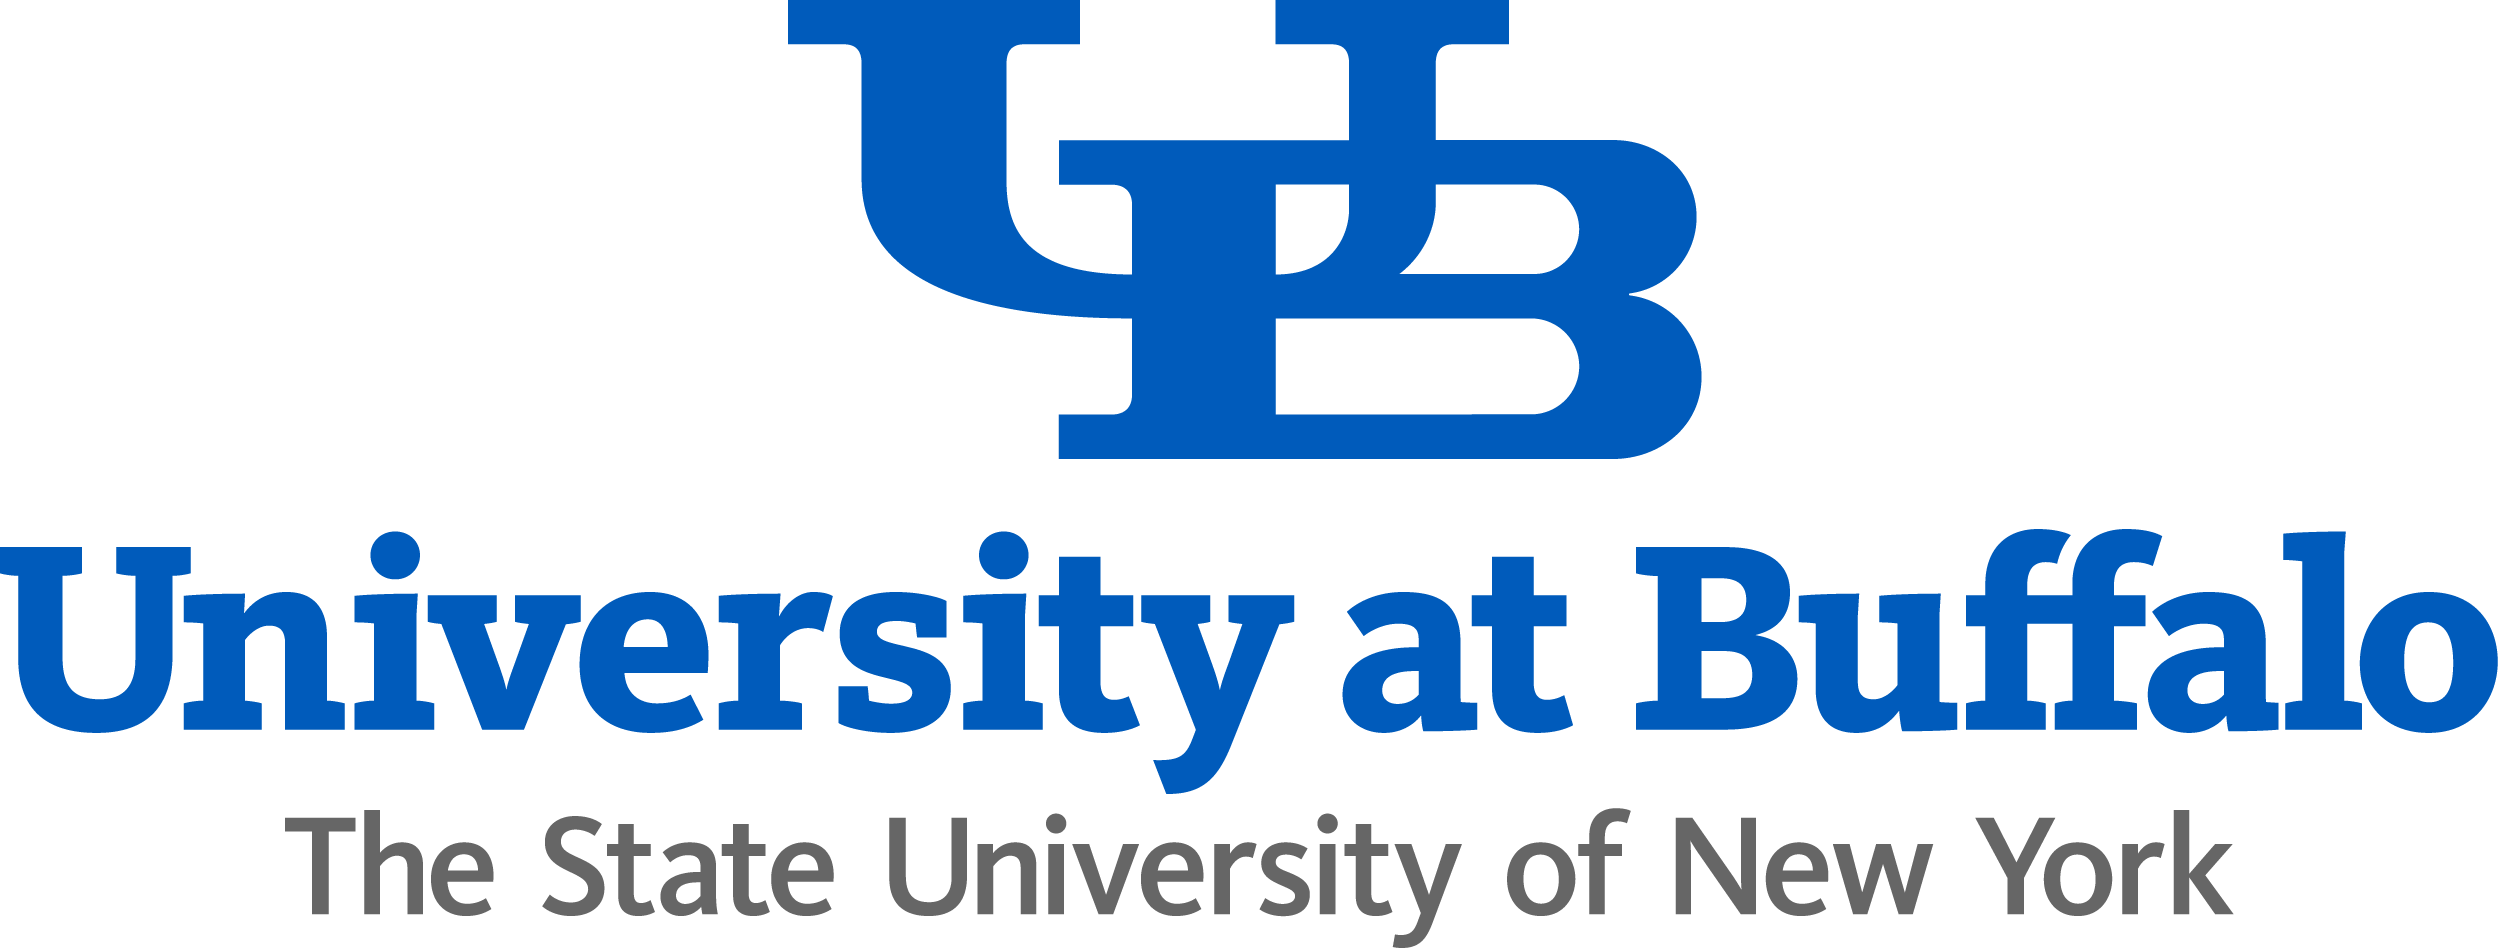 University at Buffalo; The State University of New York